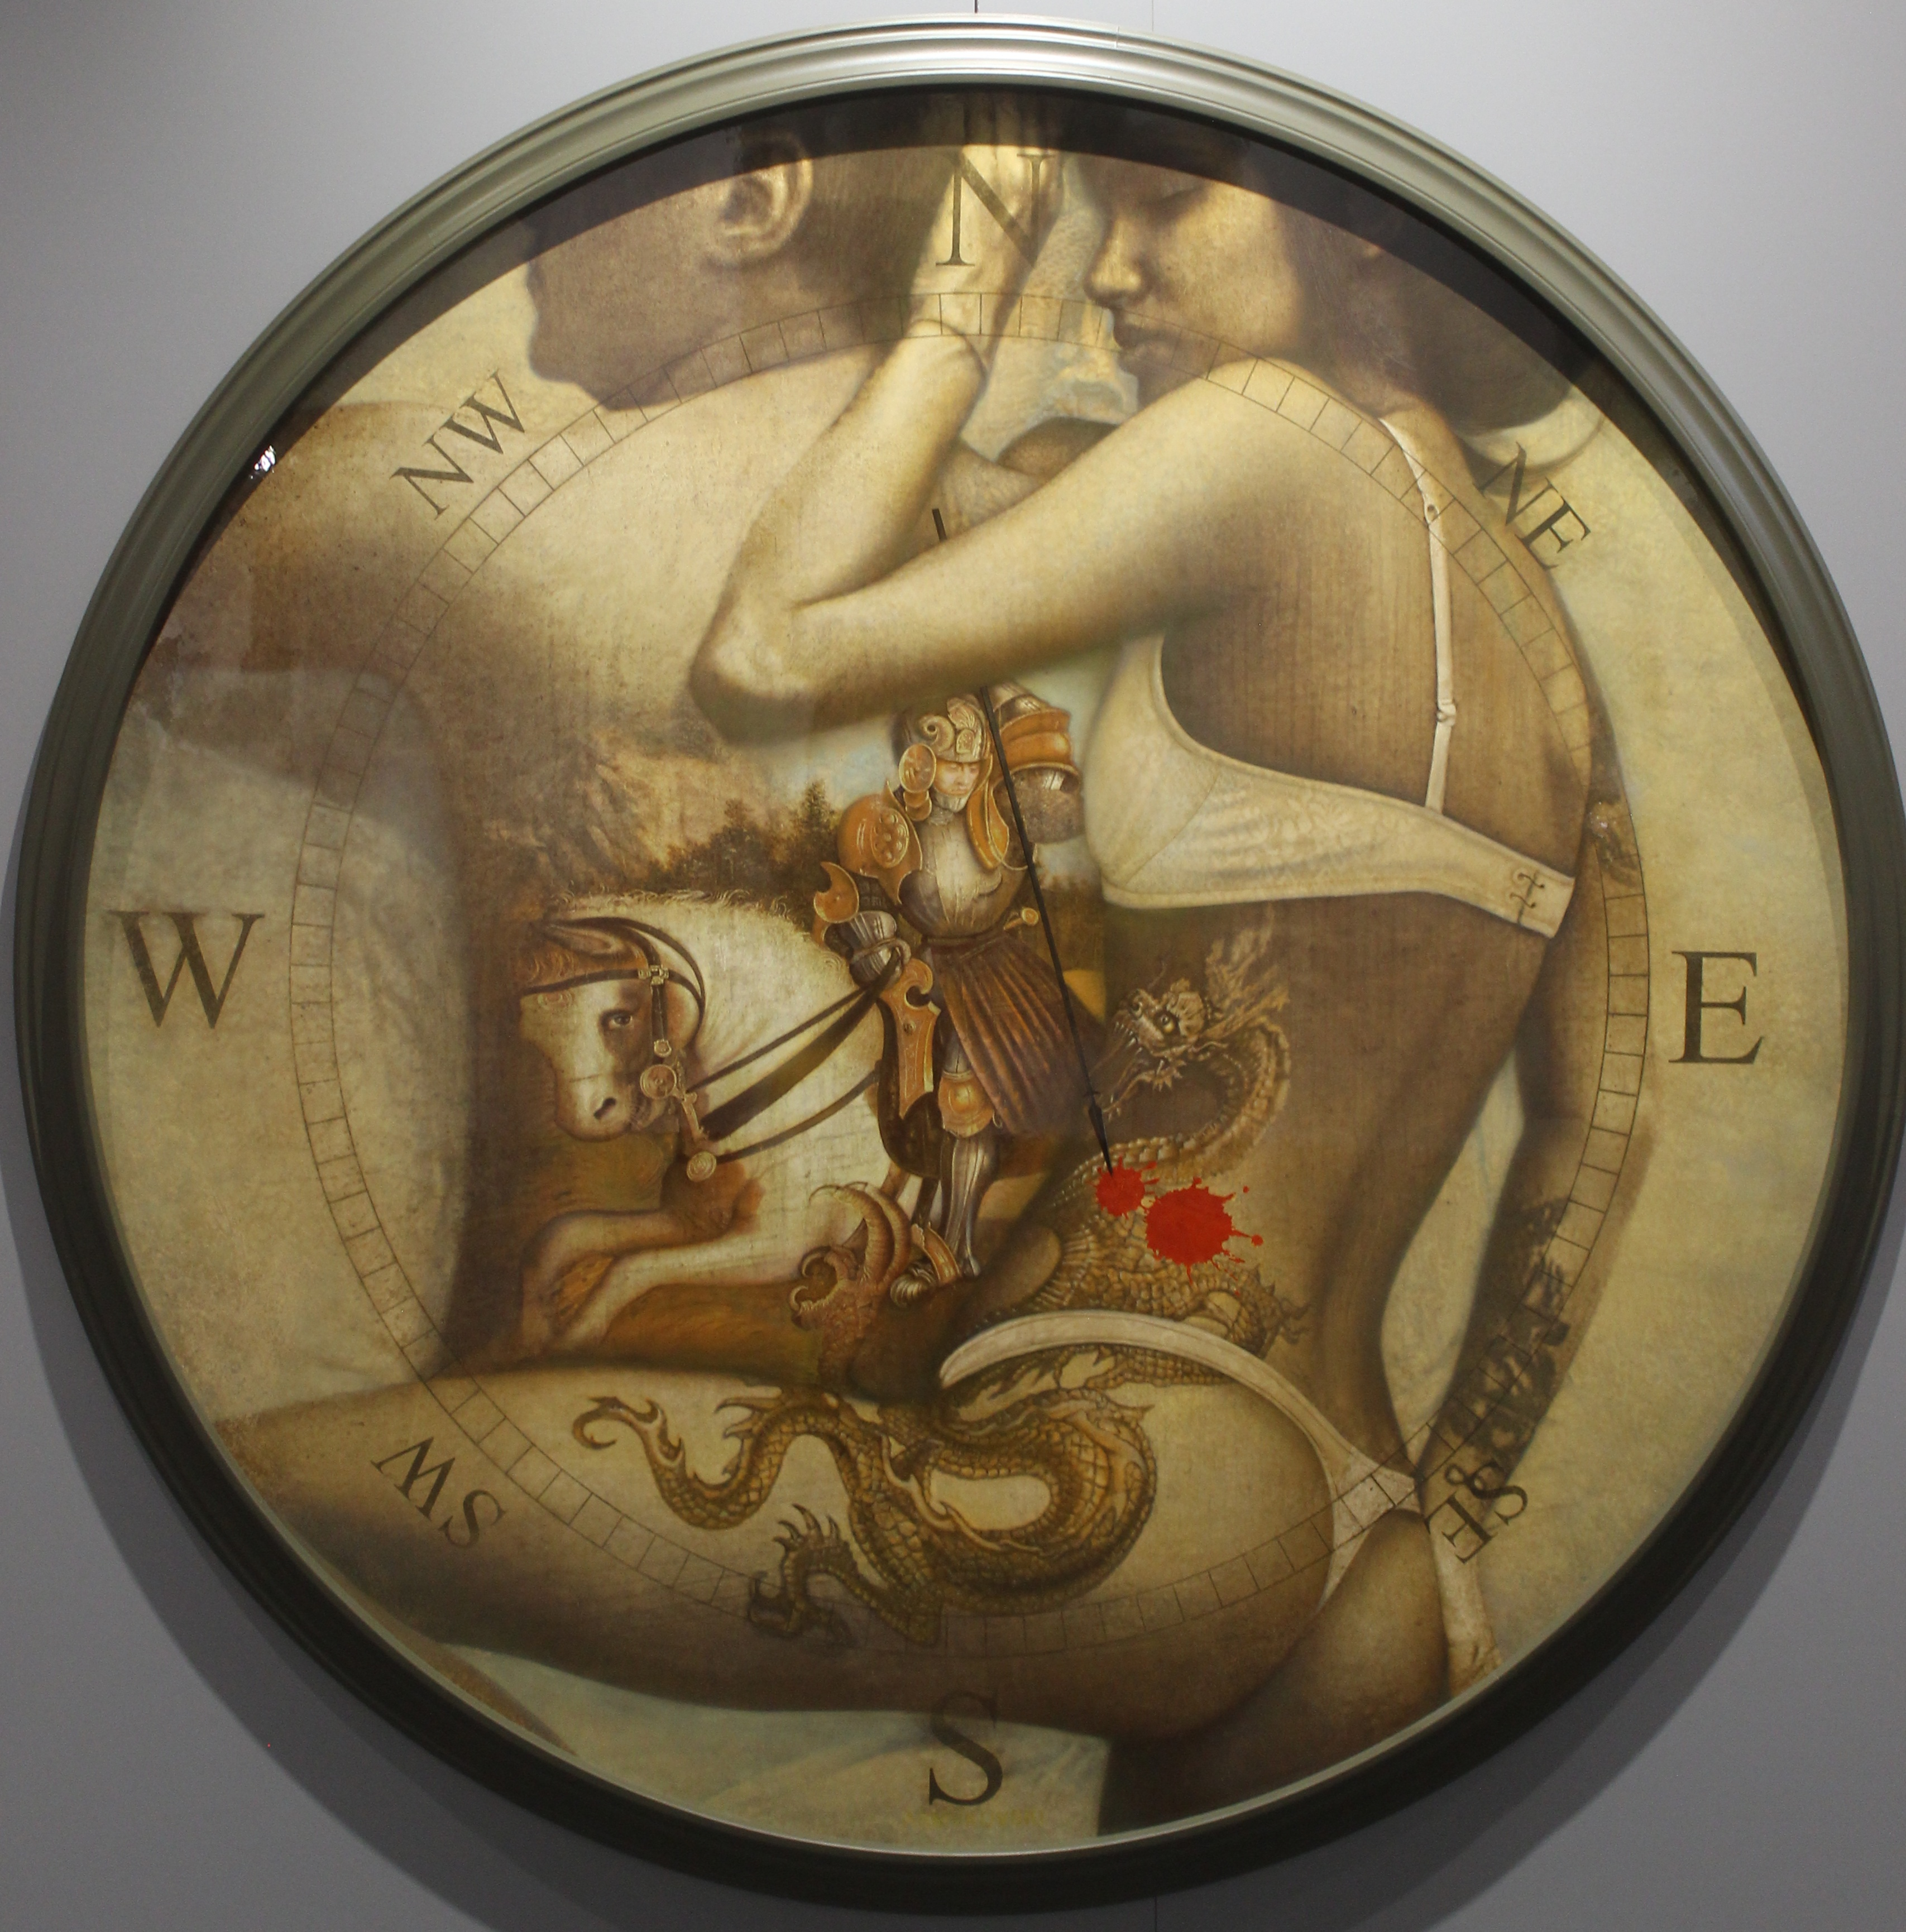 Intimate details or St. George killing a dragon. From the Rose of Winds or East-West Project